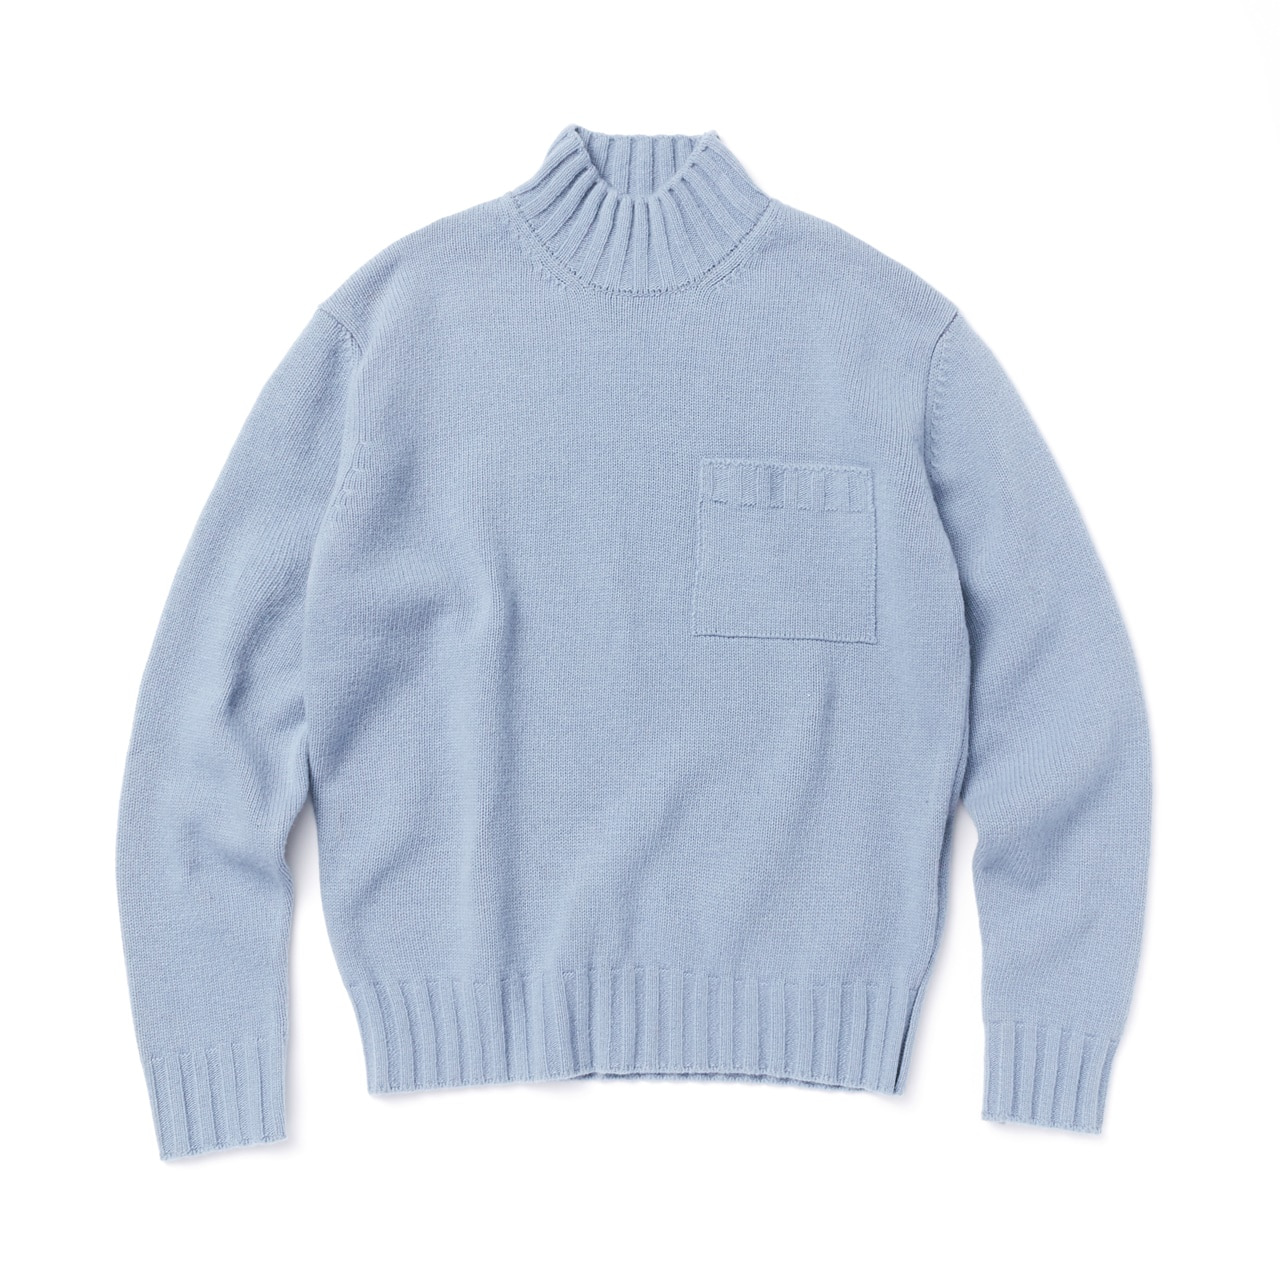 -[AMFEAST] SKY BLUE BIG POCKET SWEATER